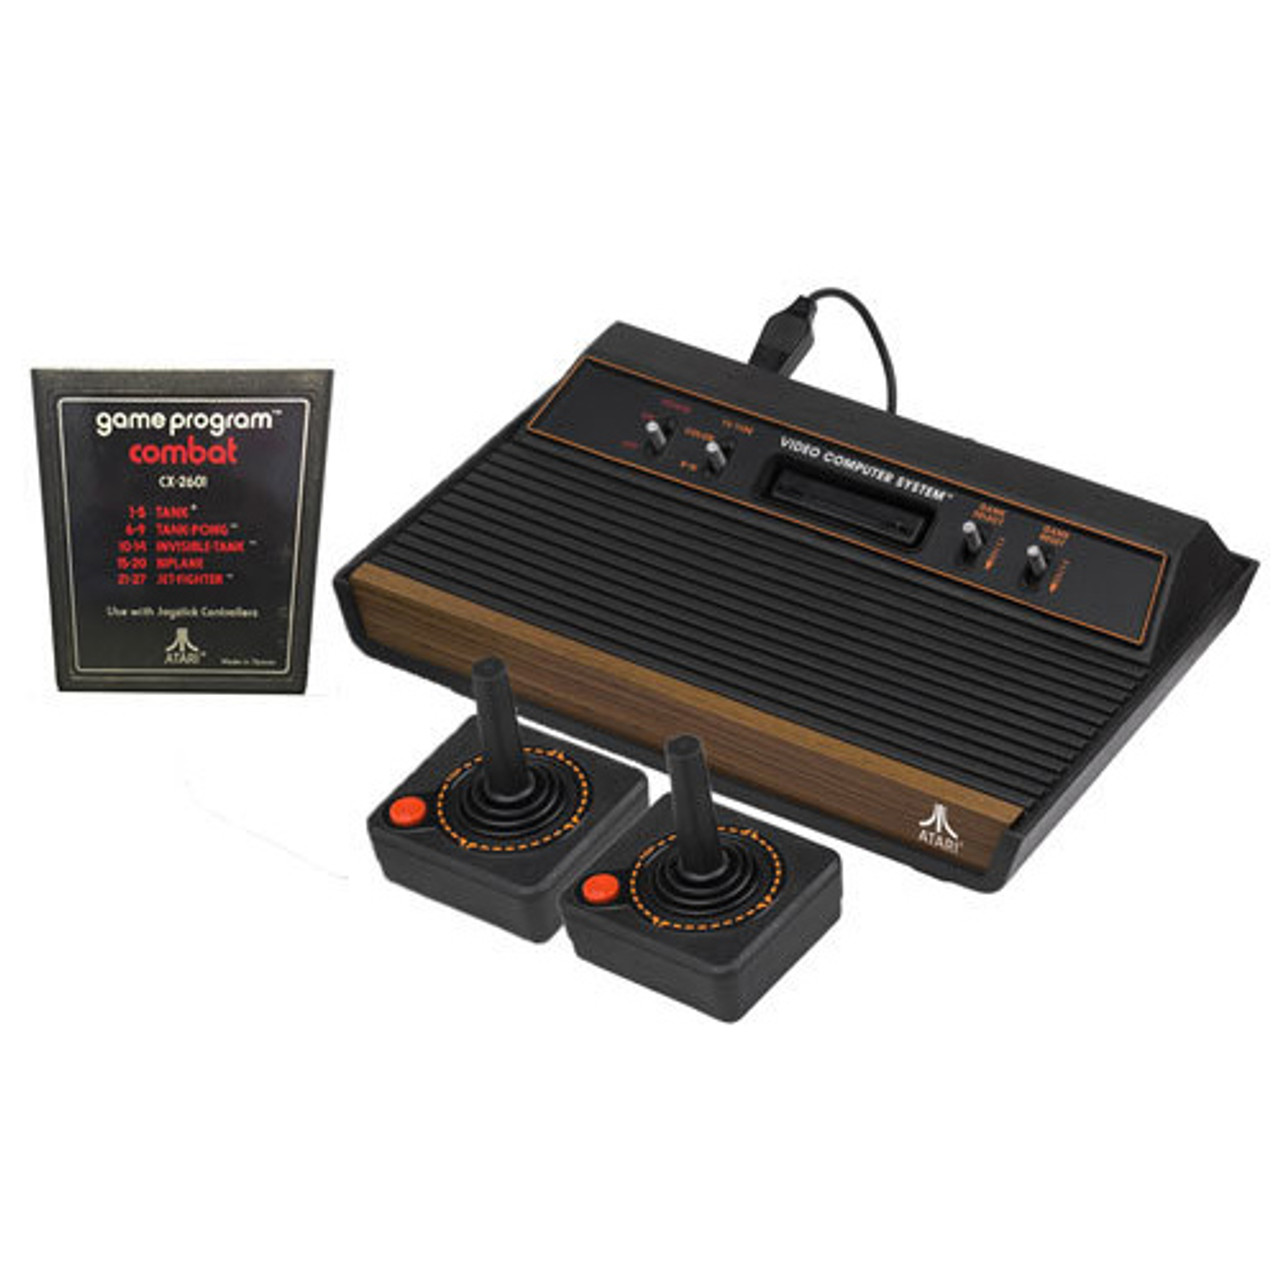 Atari 2600 2 player combat game system pak for sale dkoldies - Atari game console for sale ...